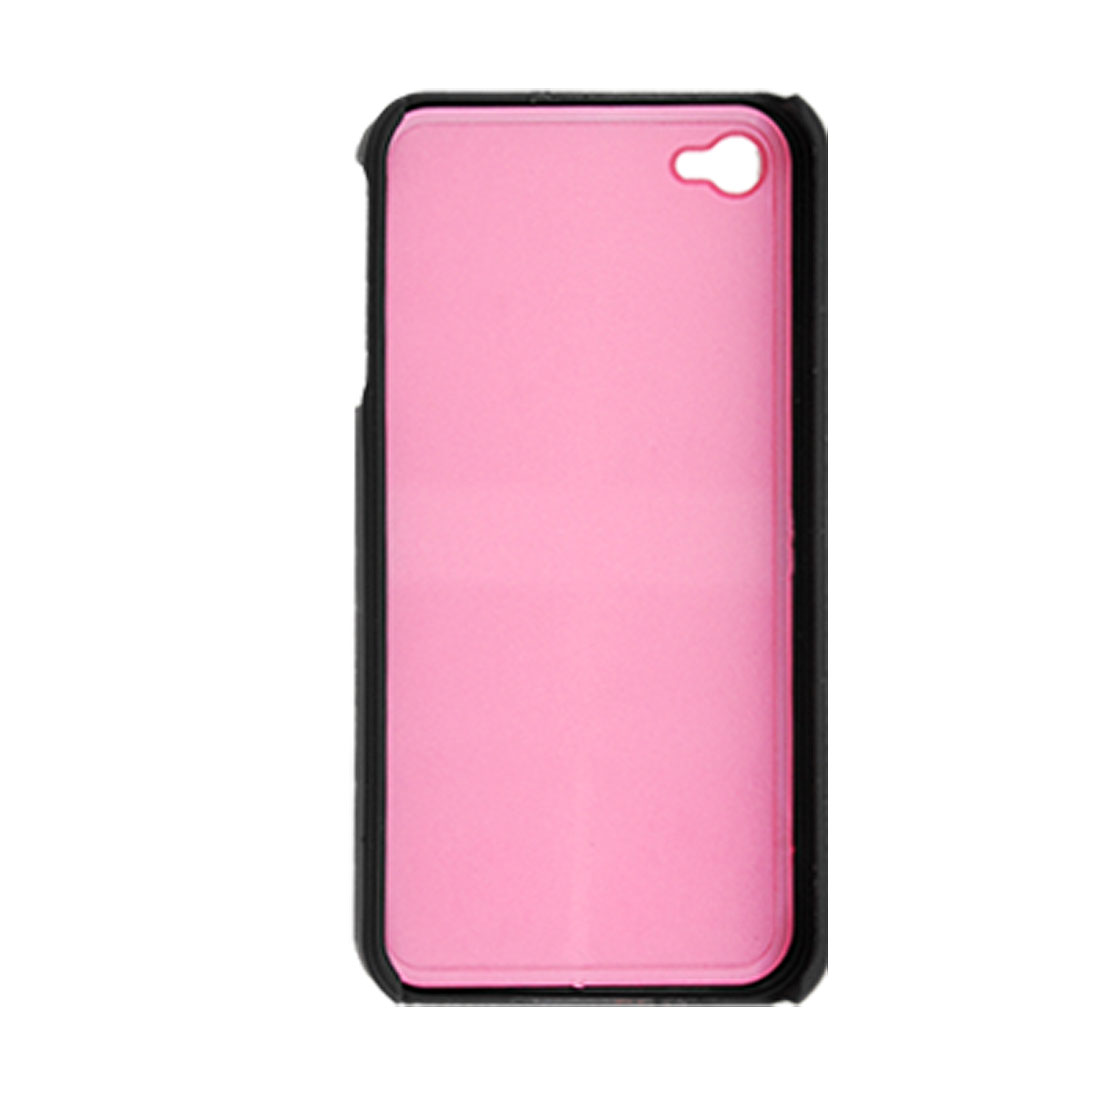 Black Pink Hard 2-Piece Cover Back Case for iPhone 4 4G